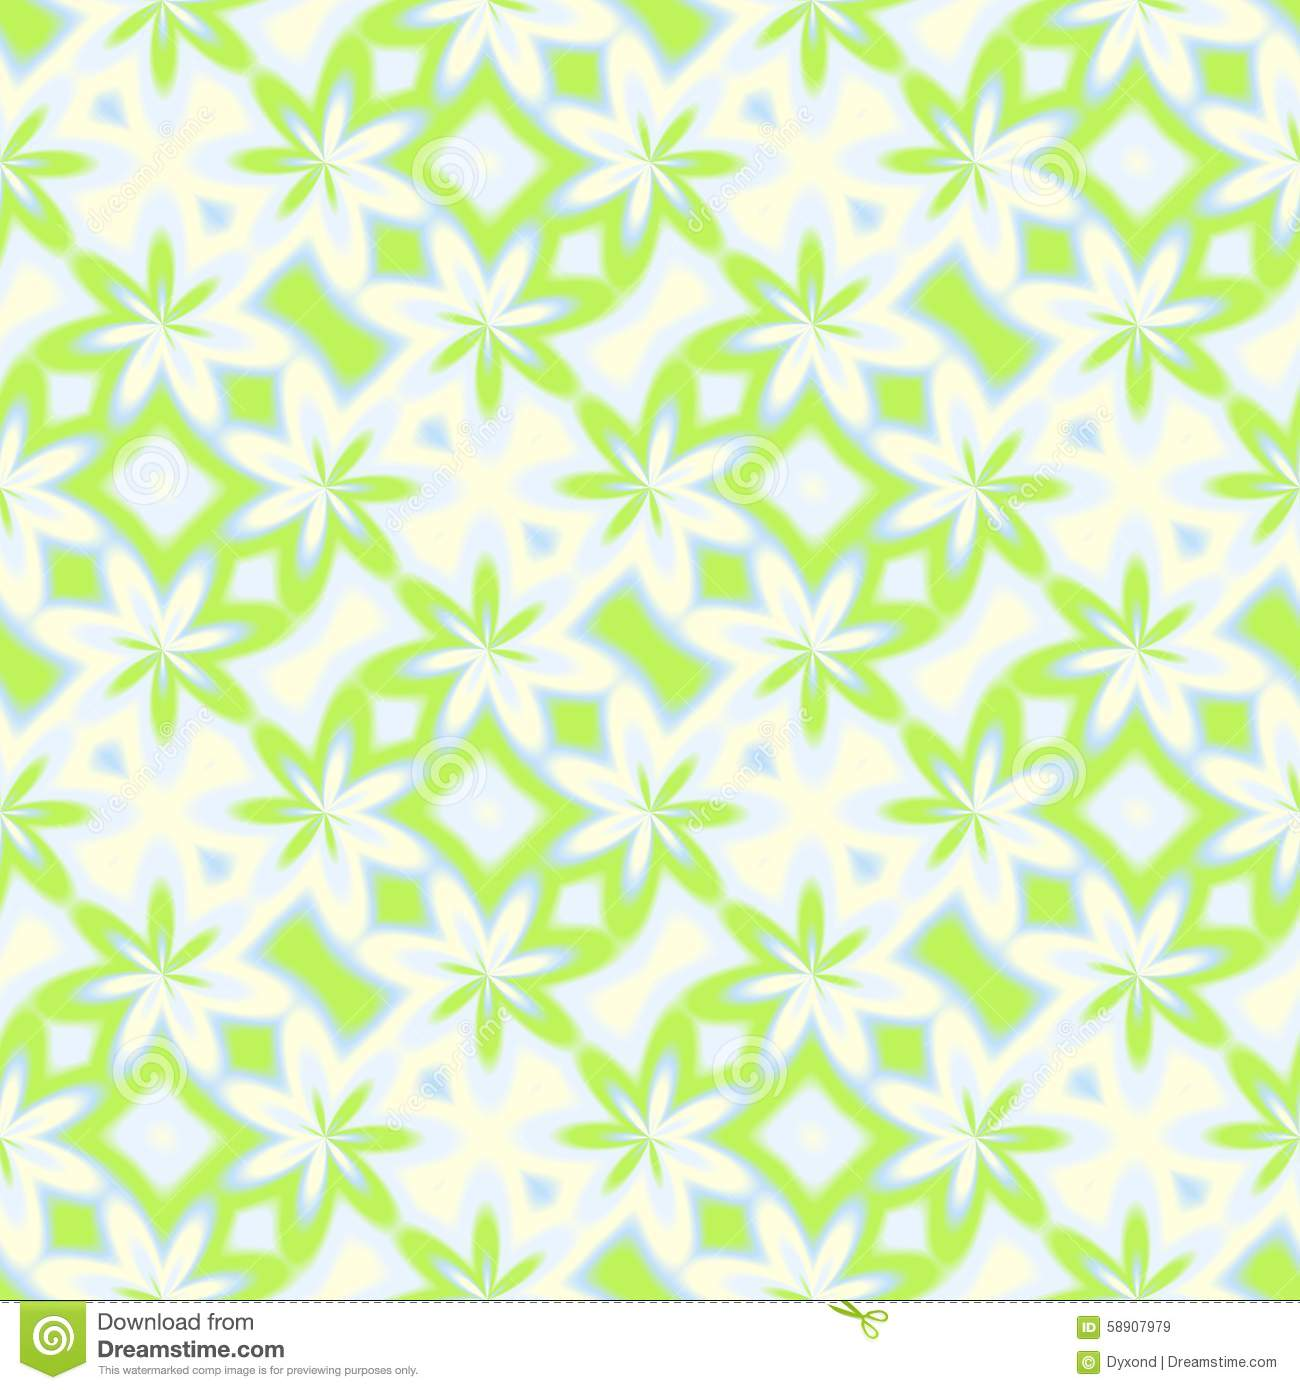 It is a picture of Simplicity Light Green Pattern Background